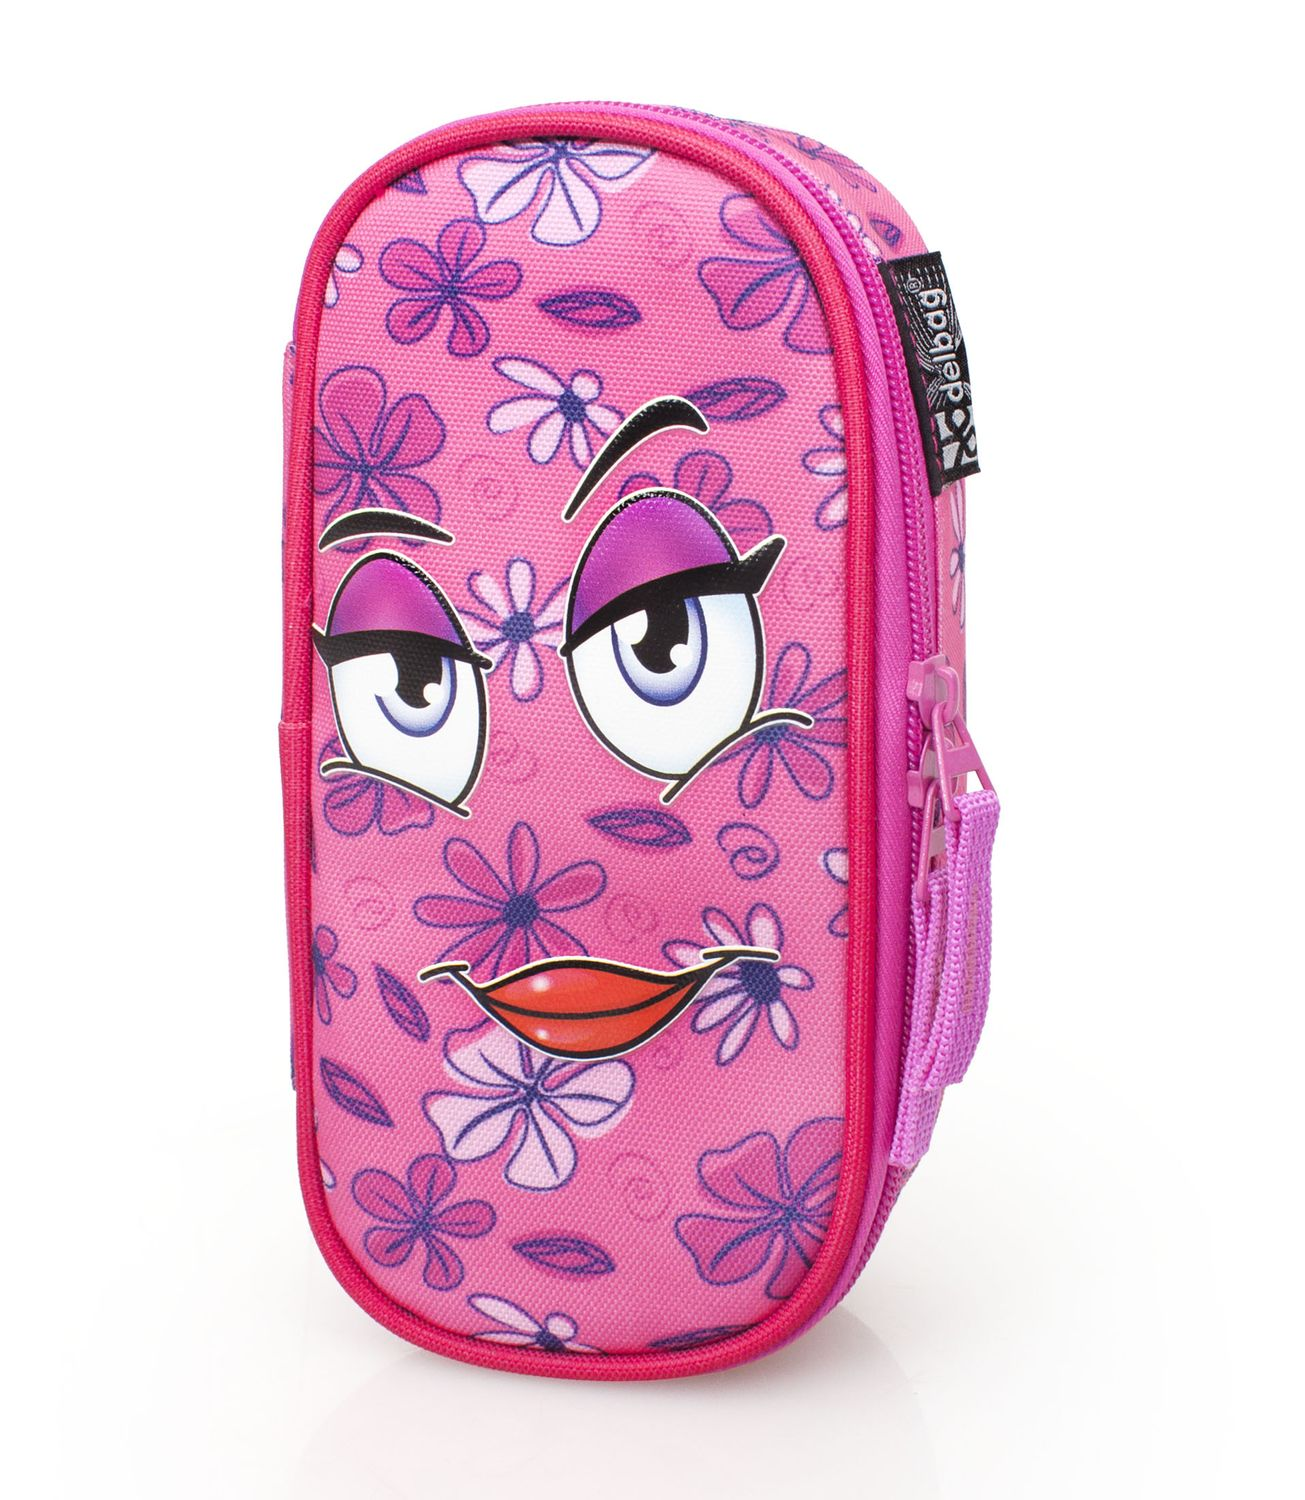 Delbag COME HERE Pink Oval Pencil Case